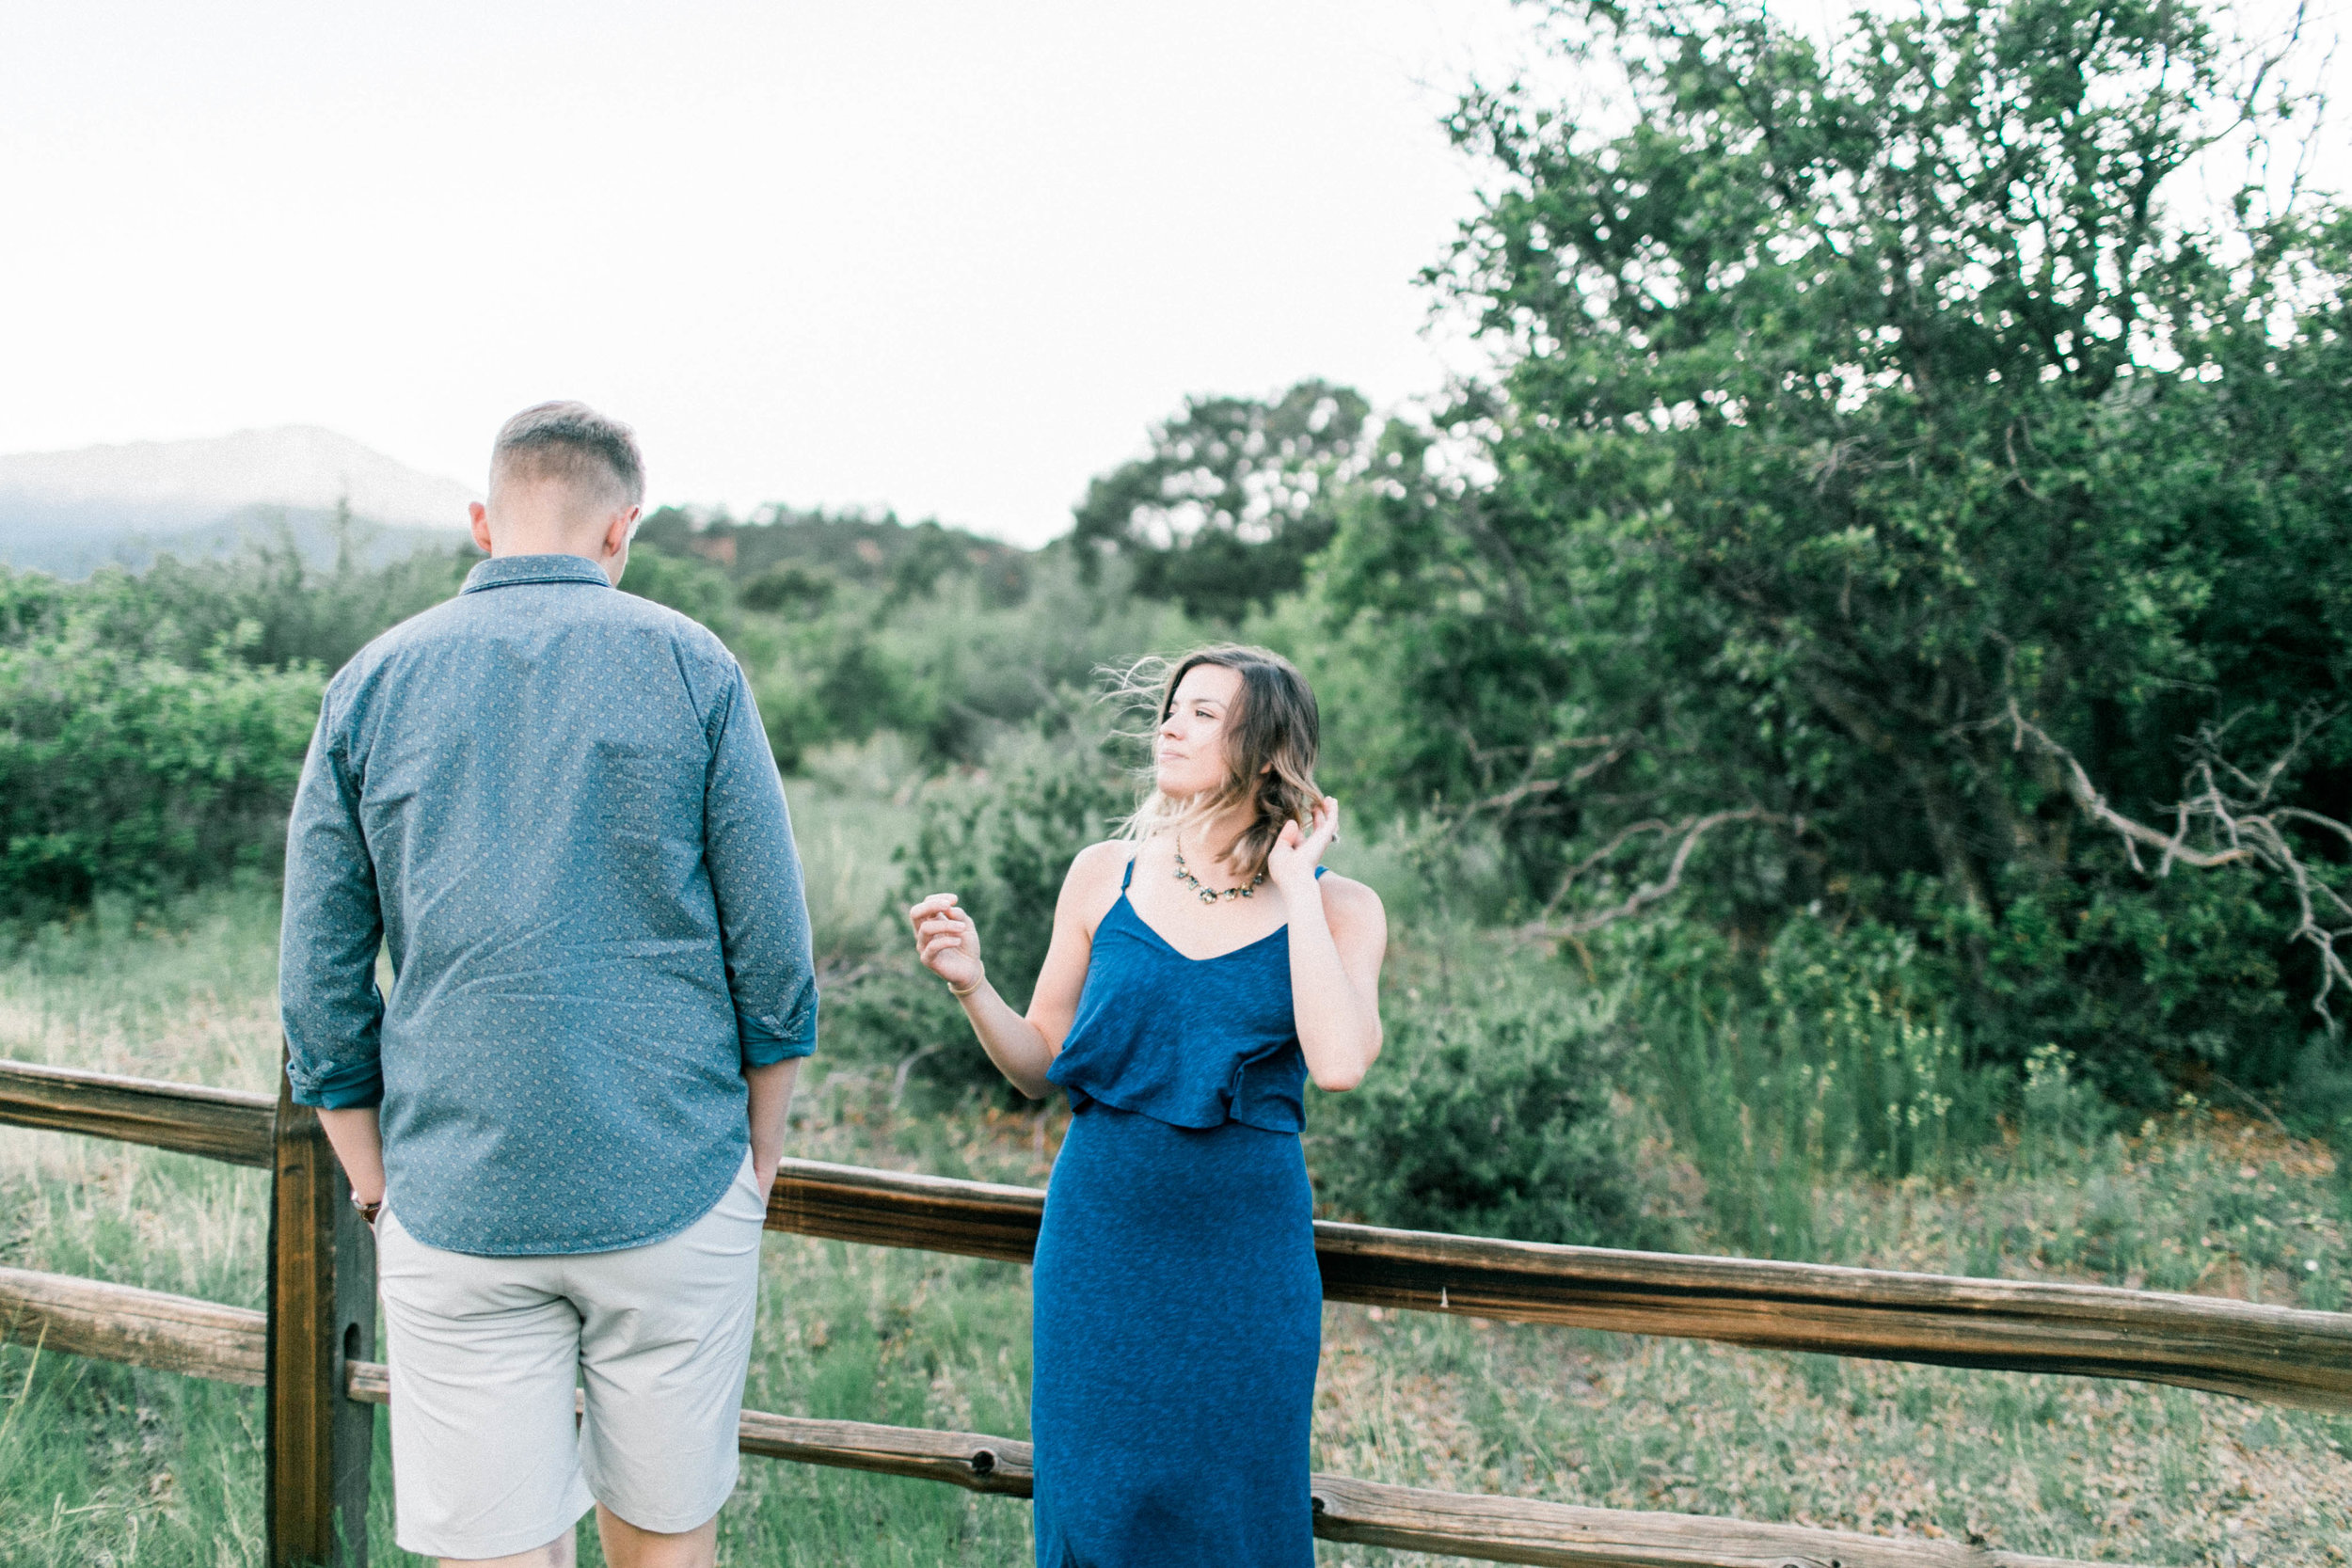 Colorado Springs Engagement Wedding Adventure Photographer - Erin and Jim 13.jpg